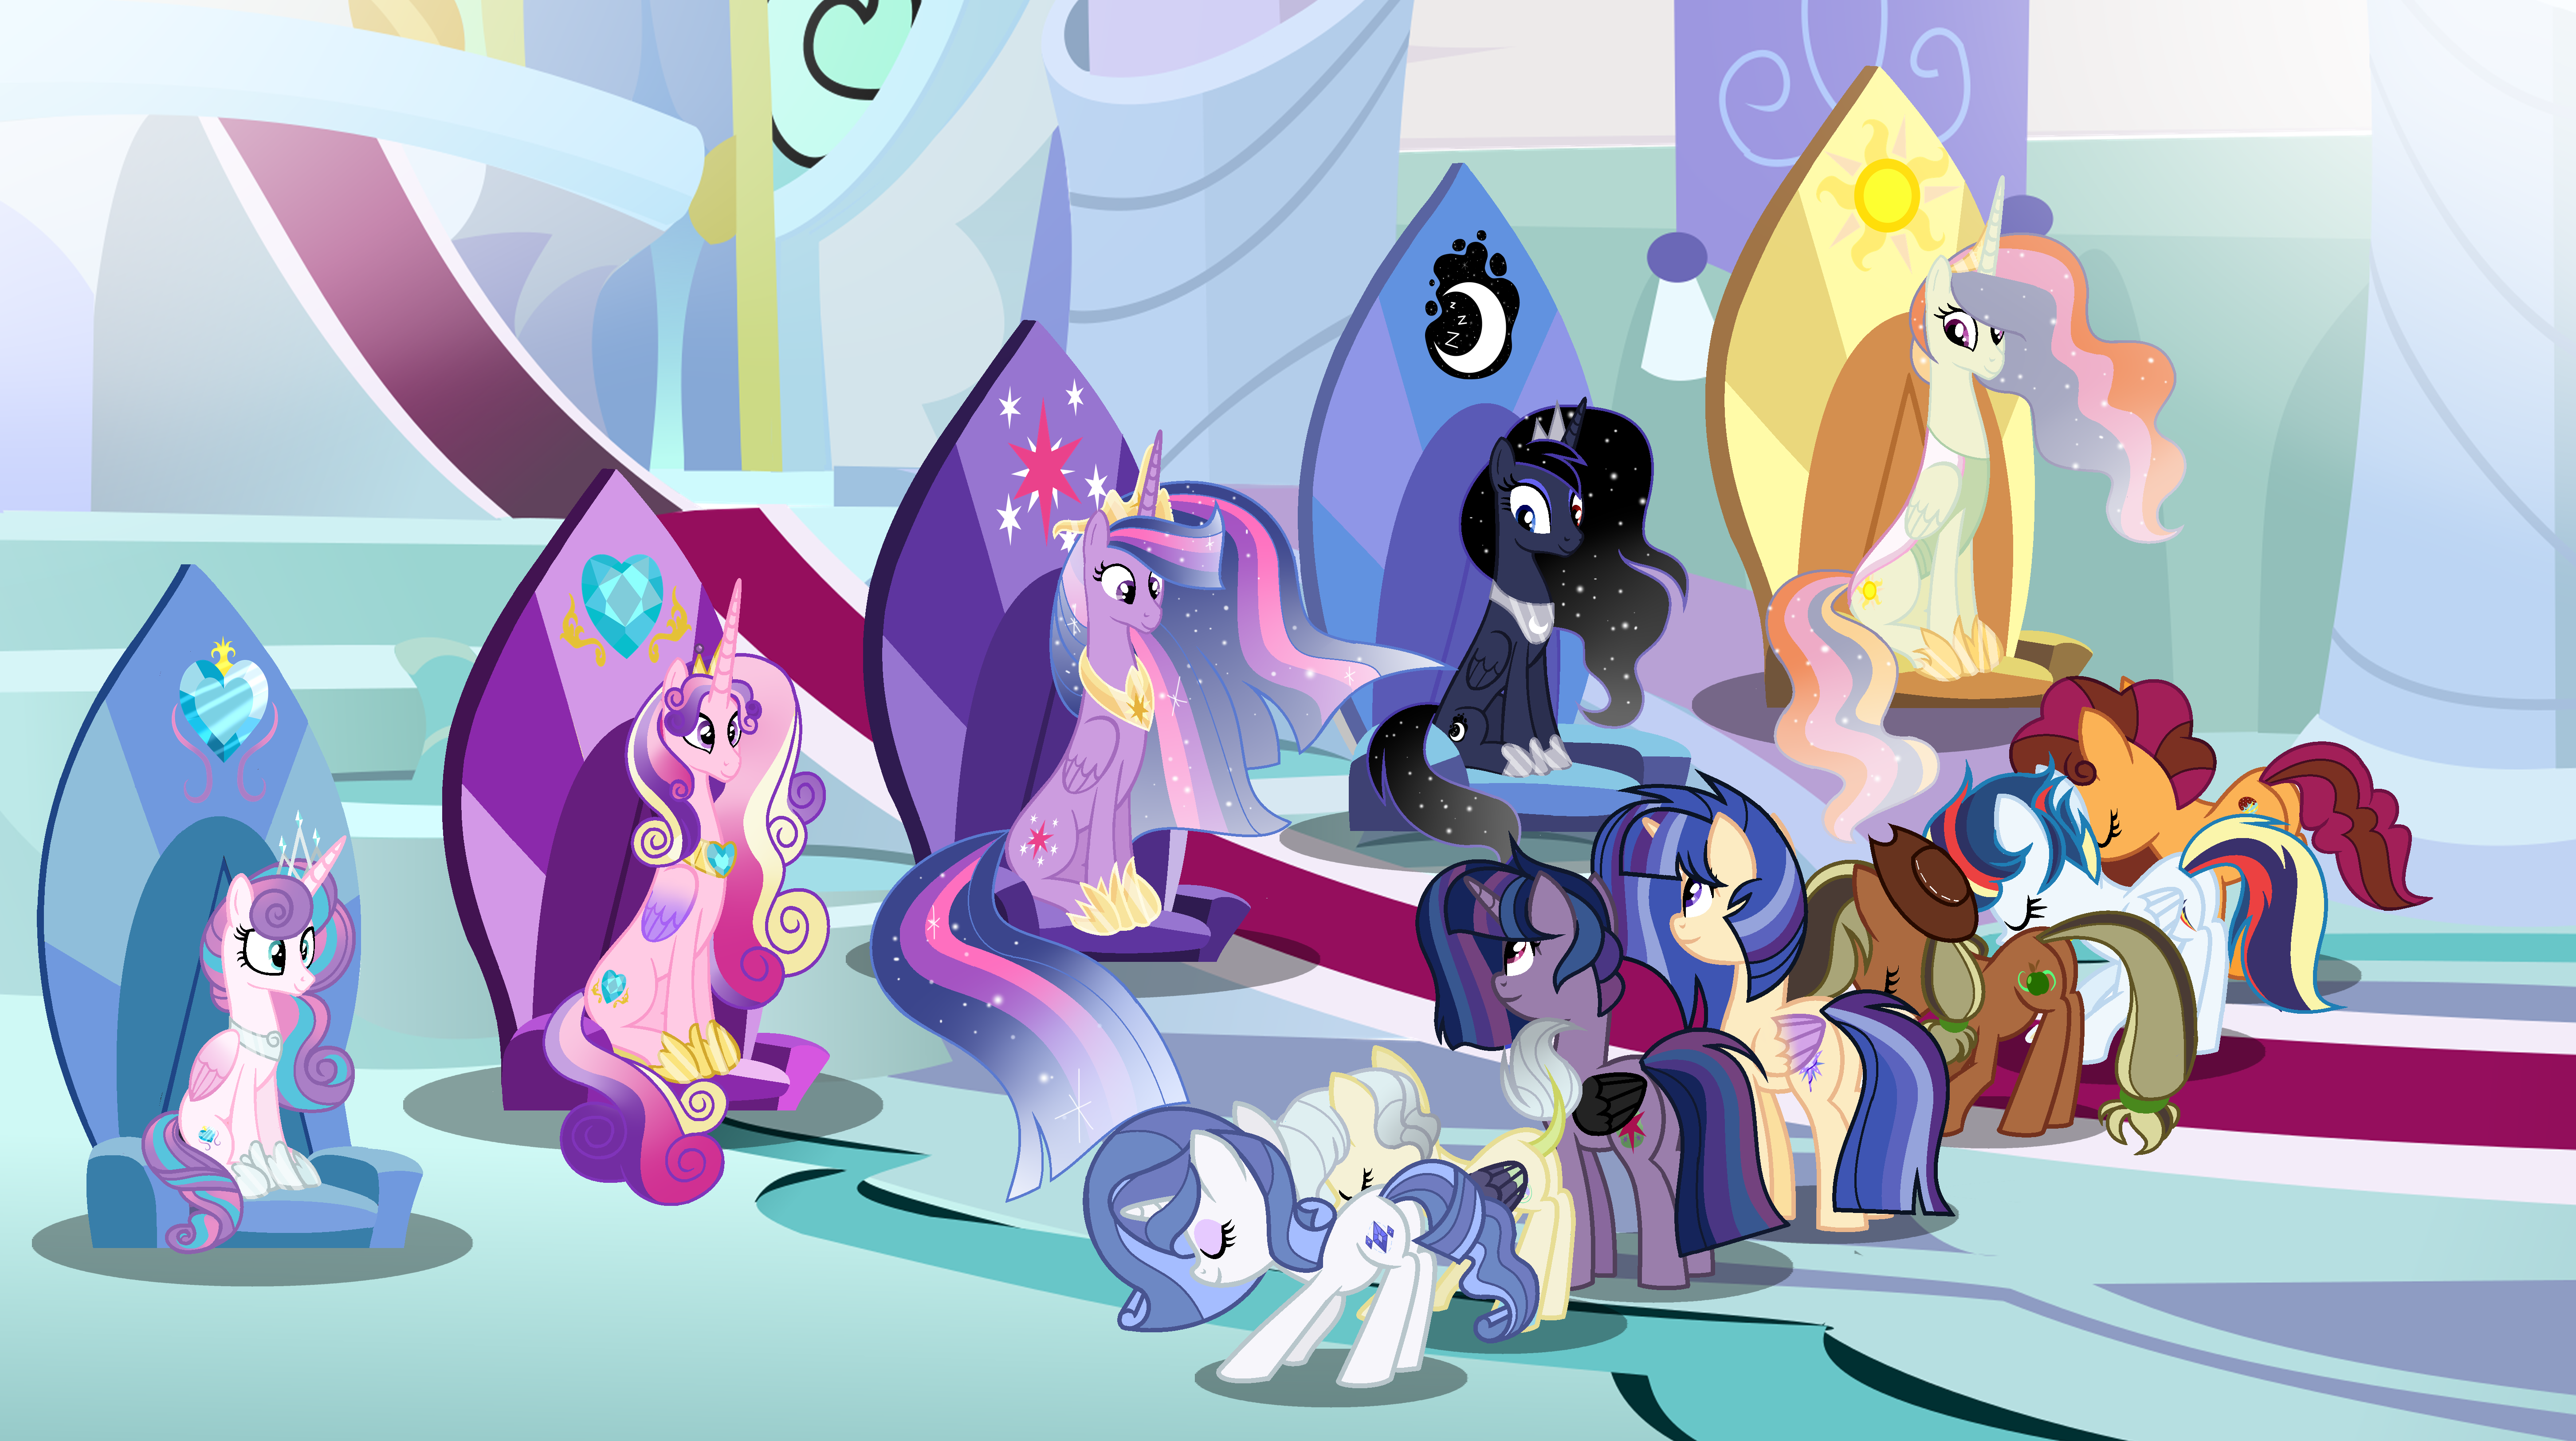 Mlp Next Gen The Meeting With Princesses By Shadowandromedayt On Deviantart My Little Pony Cartoon My Little Pony List My Little Pony Princess